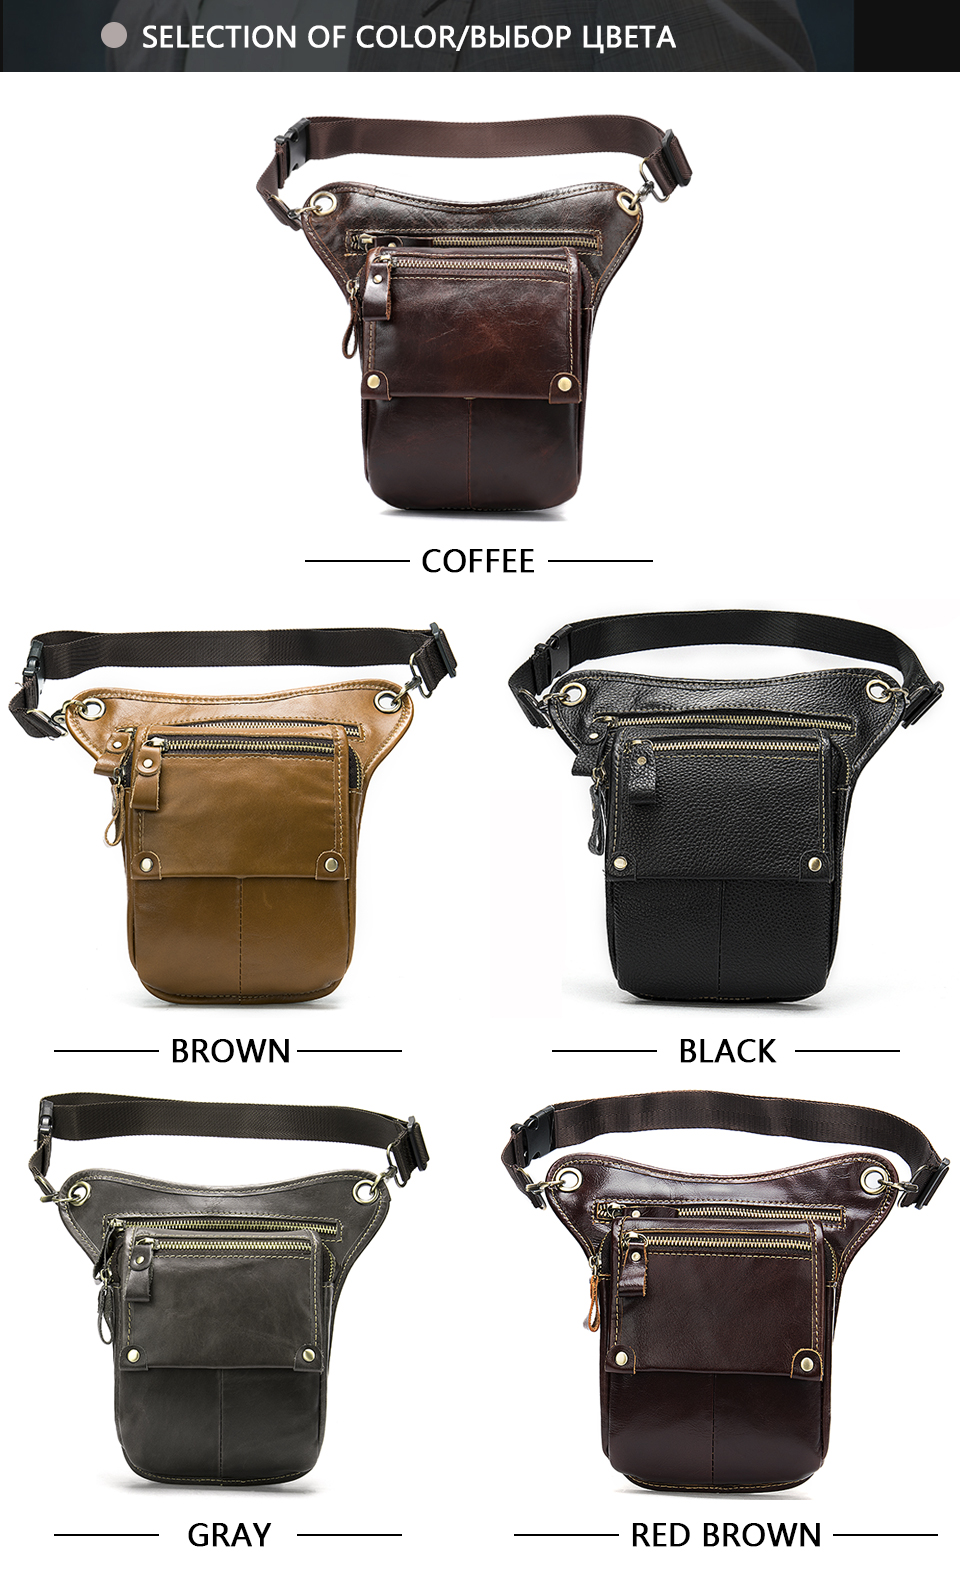 HTB1AvRqcBGE3KVjSZFhq6AkaFXaG - WESTAL men's belt bag leather leg bag male fanny pack waist bags men tactical phone pack fashion leather motorcycle bags for men